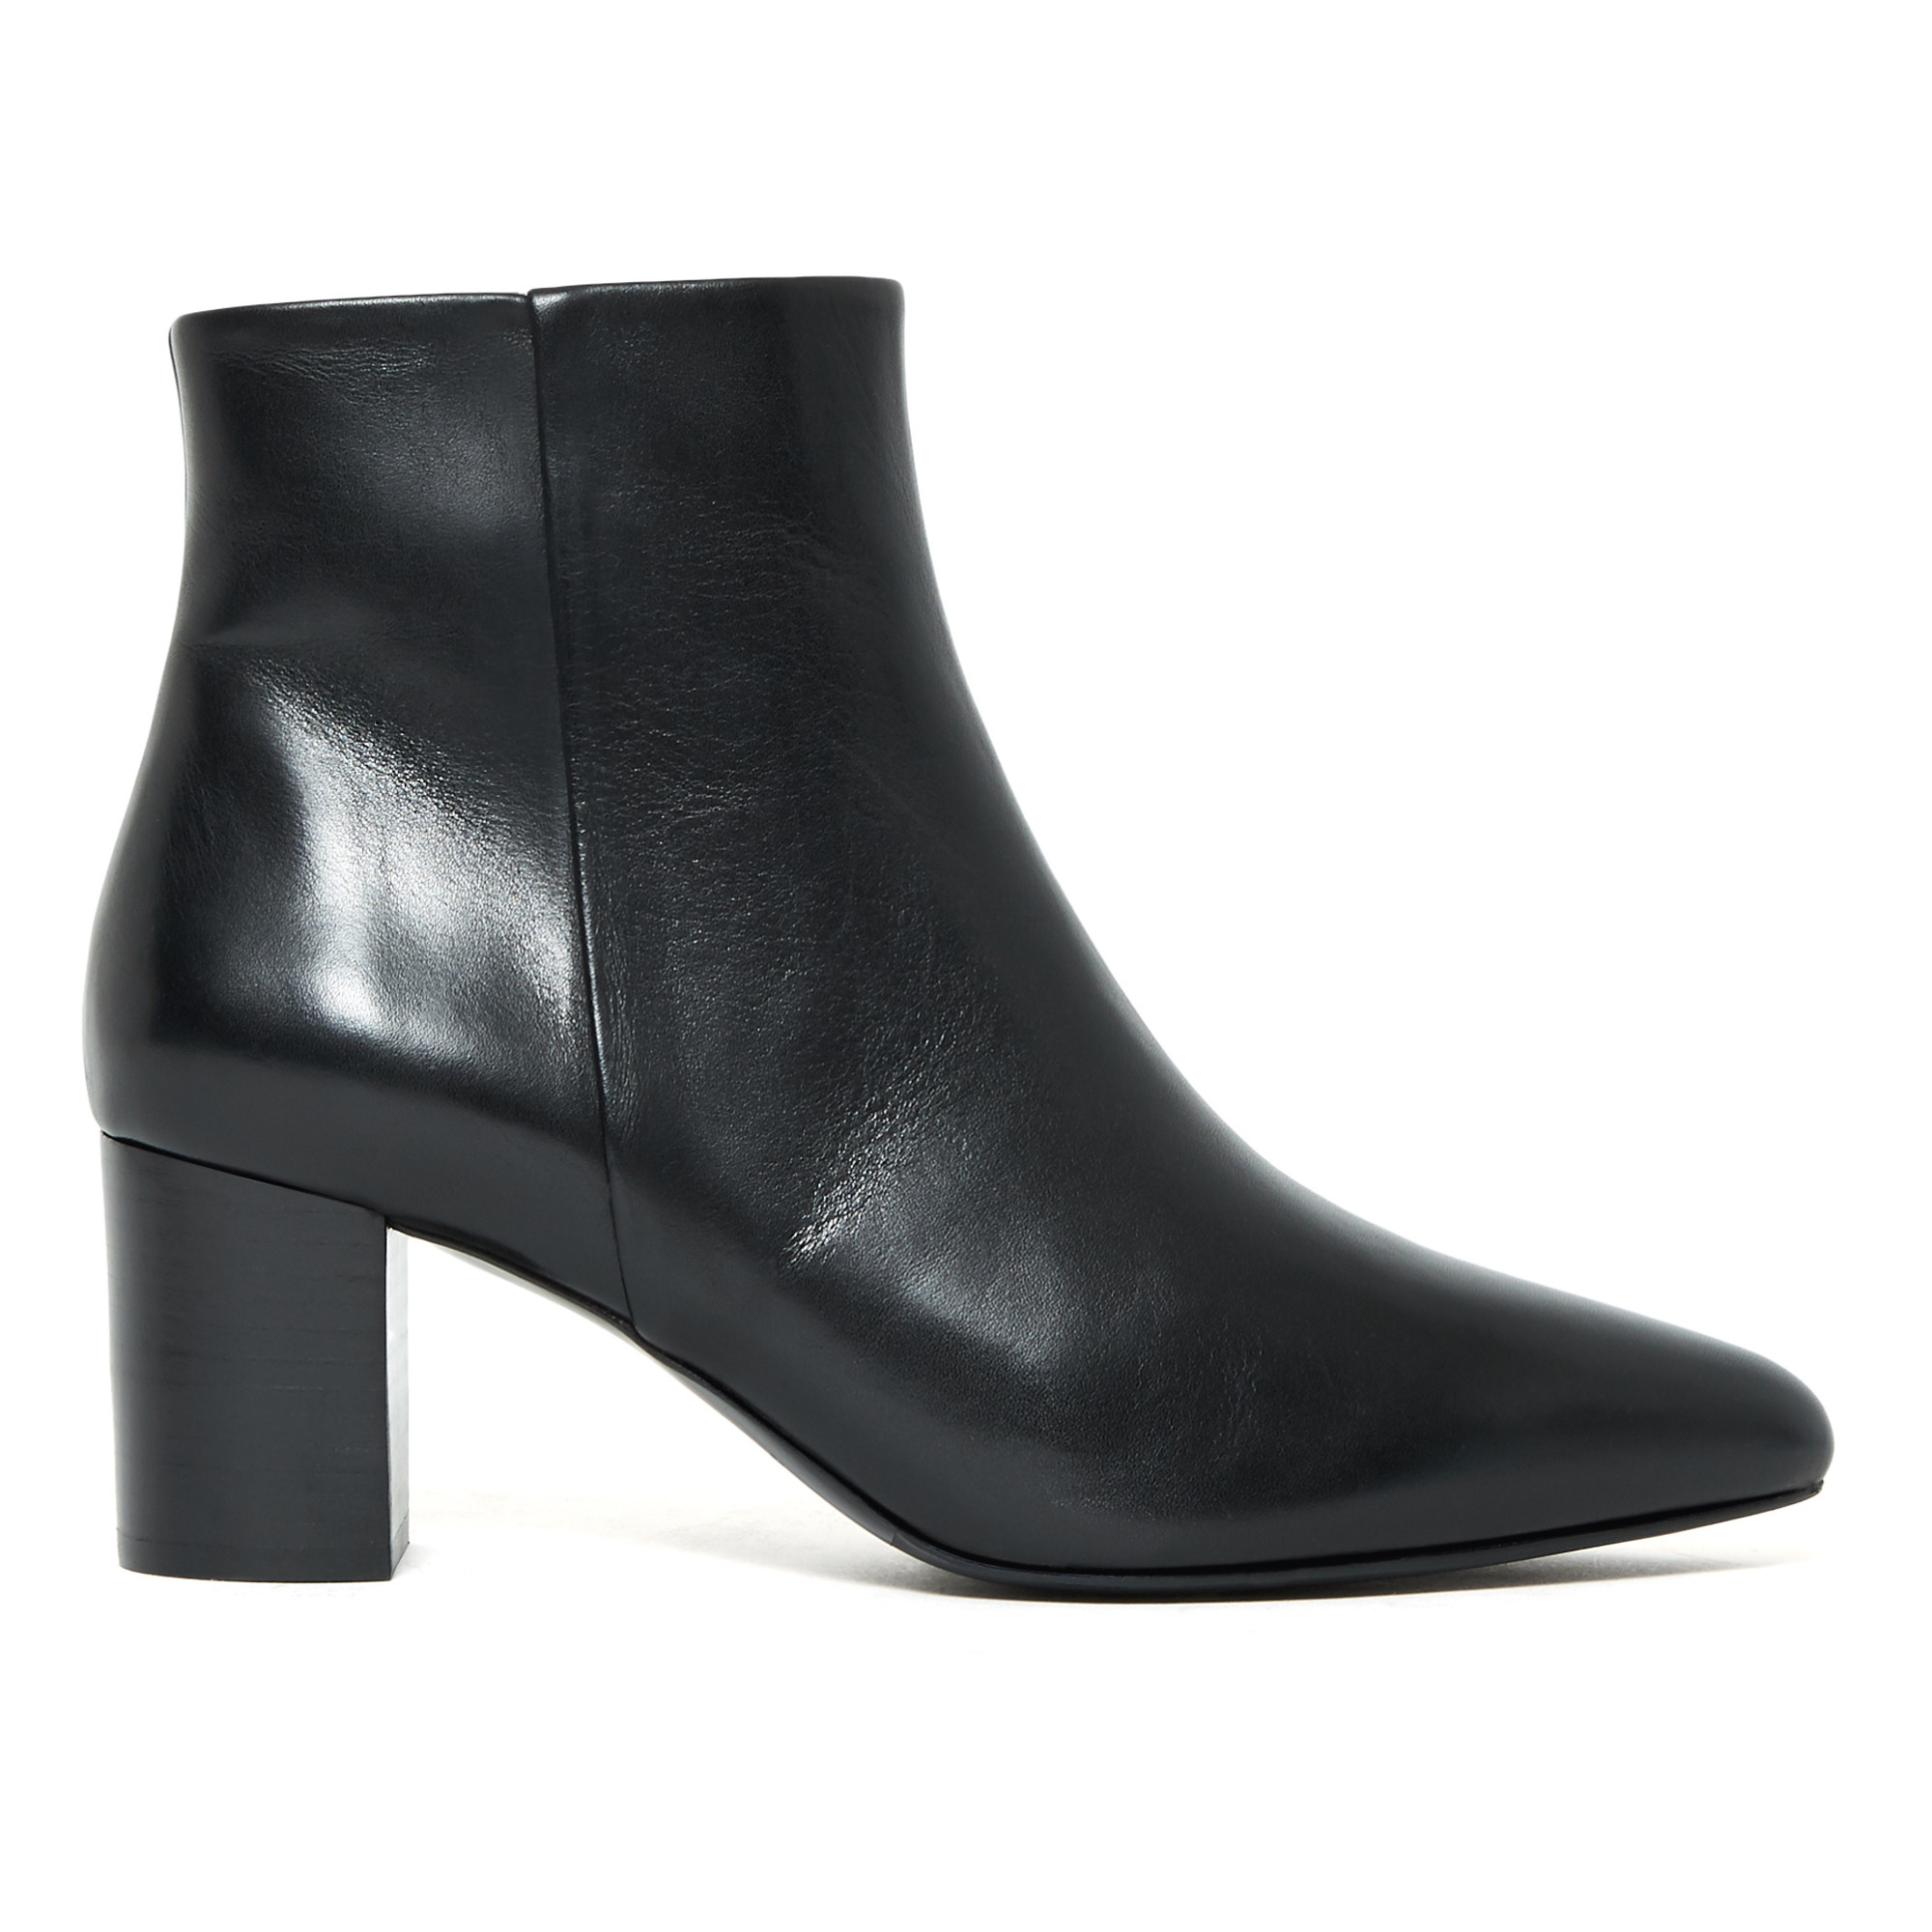 Nâ° 107 Leather Ankle Boots